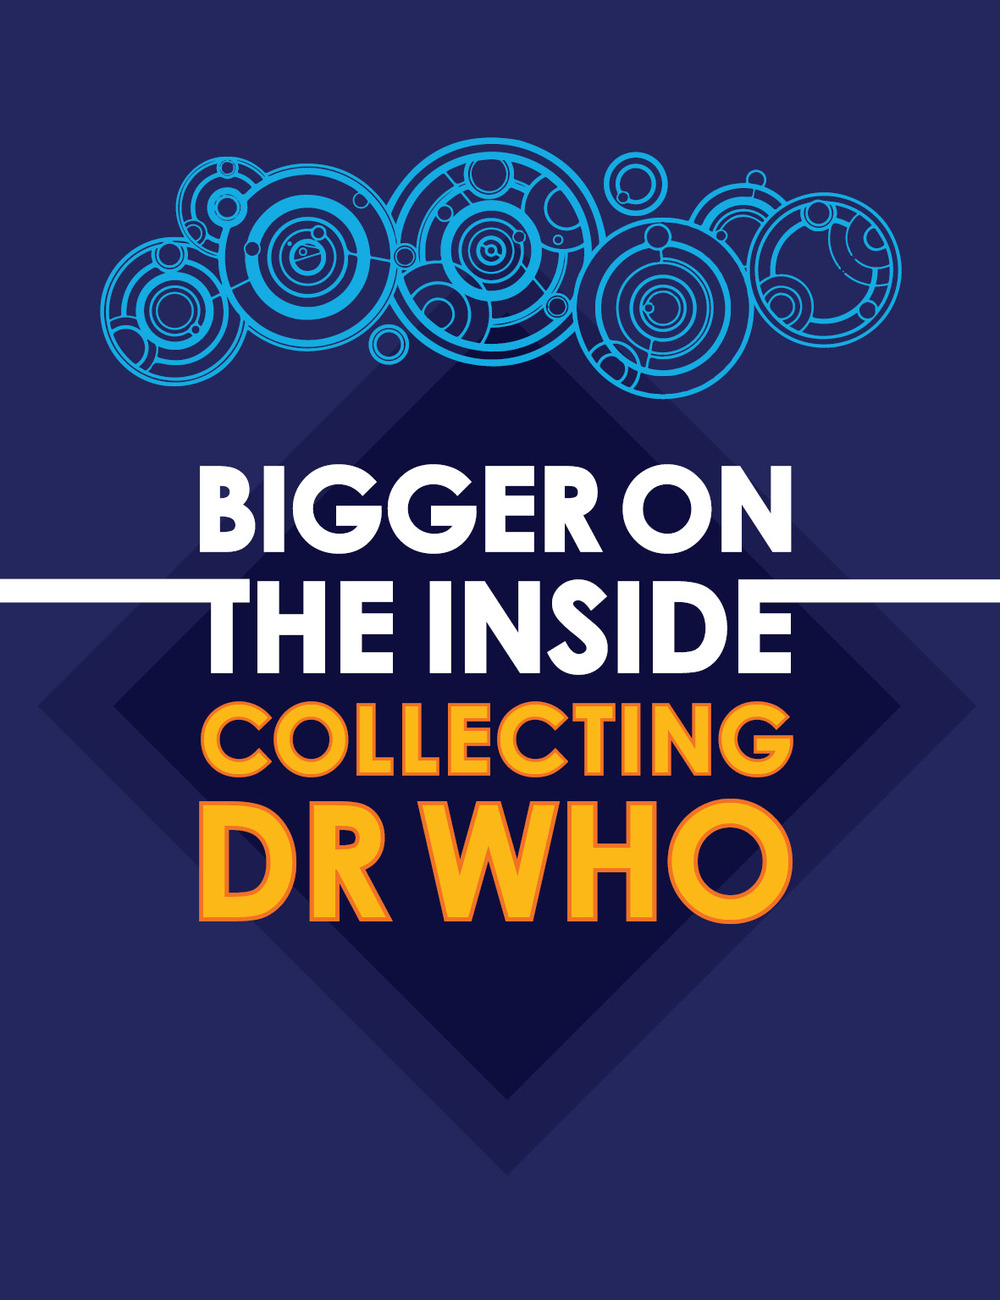 Bigger on the inside: Collecting Dr Who